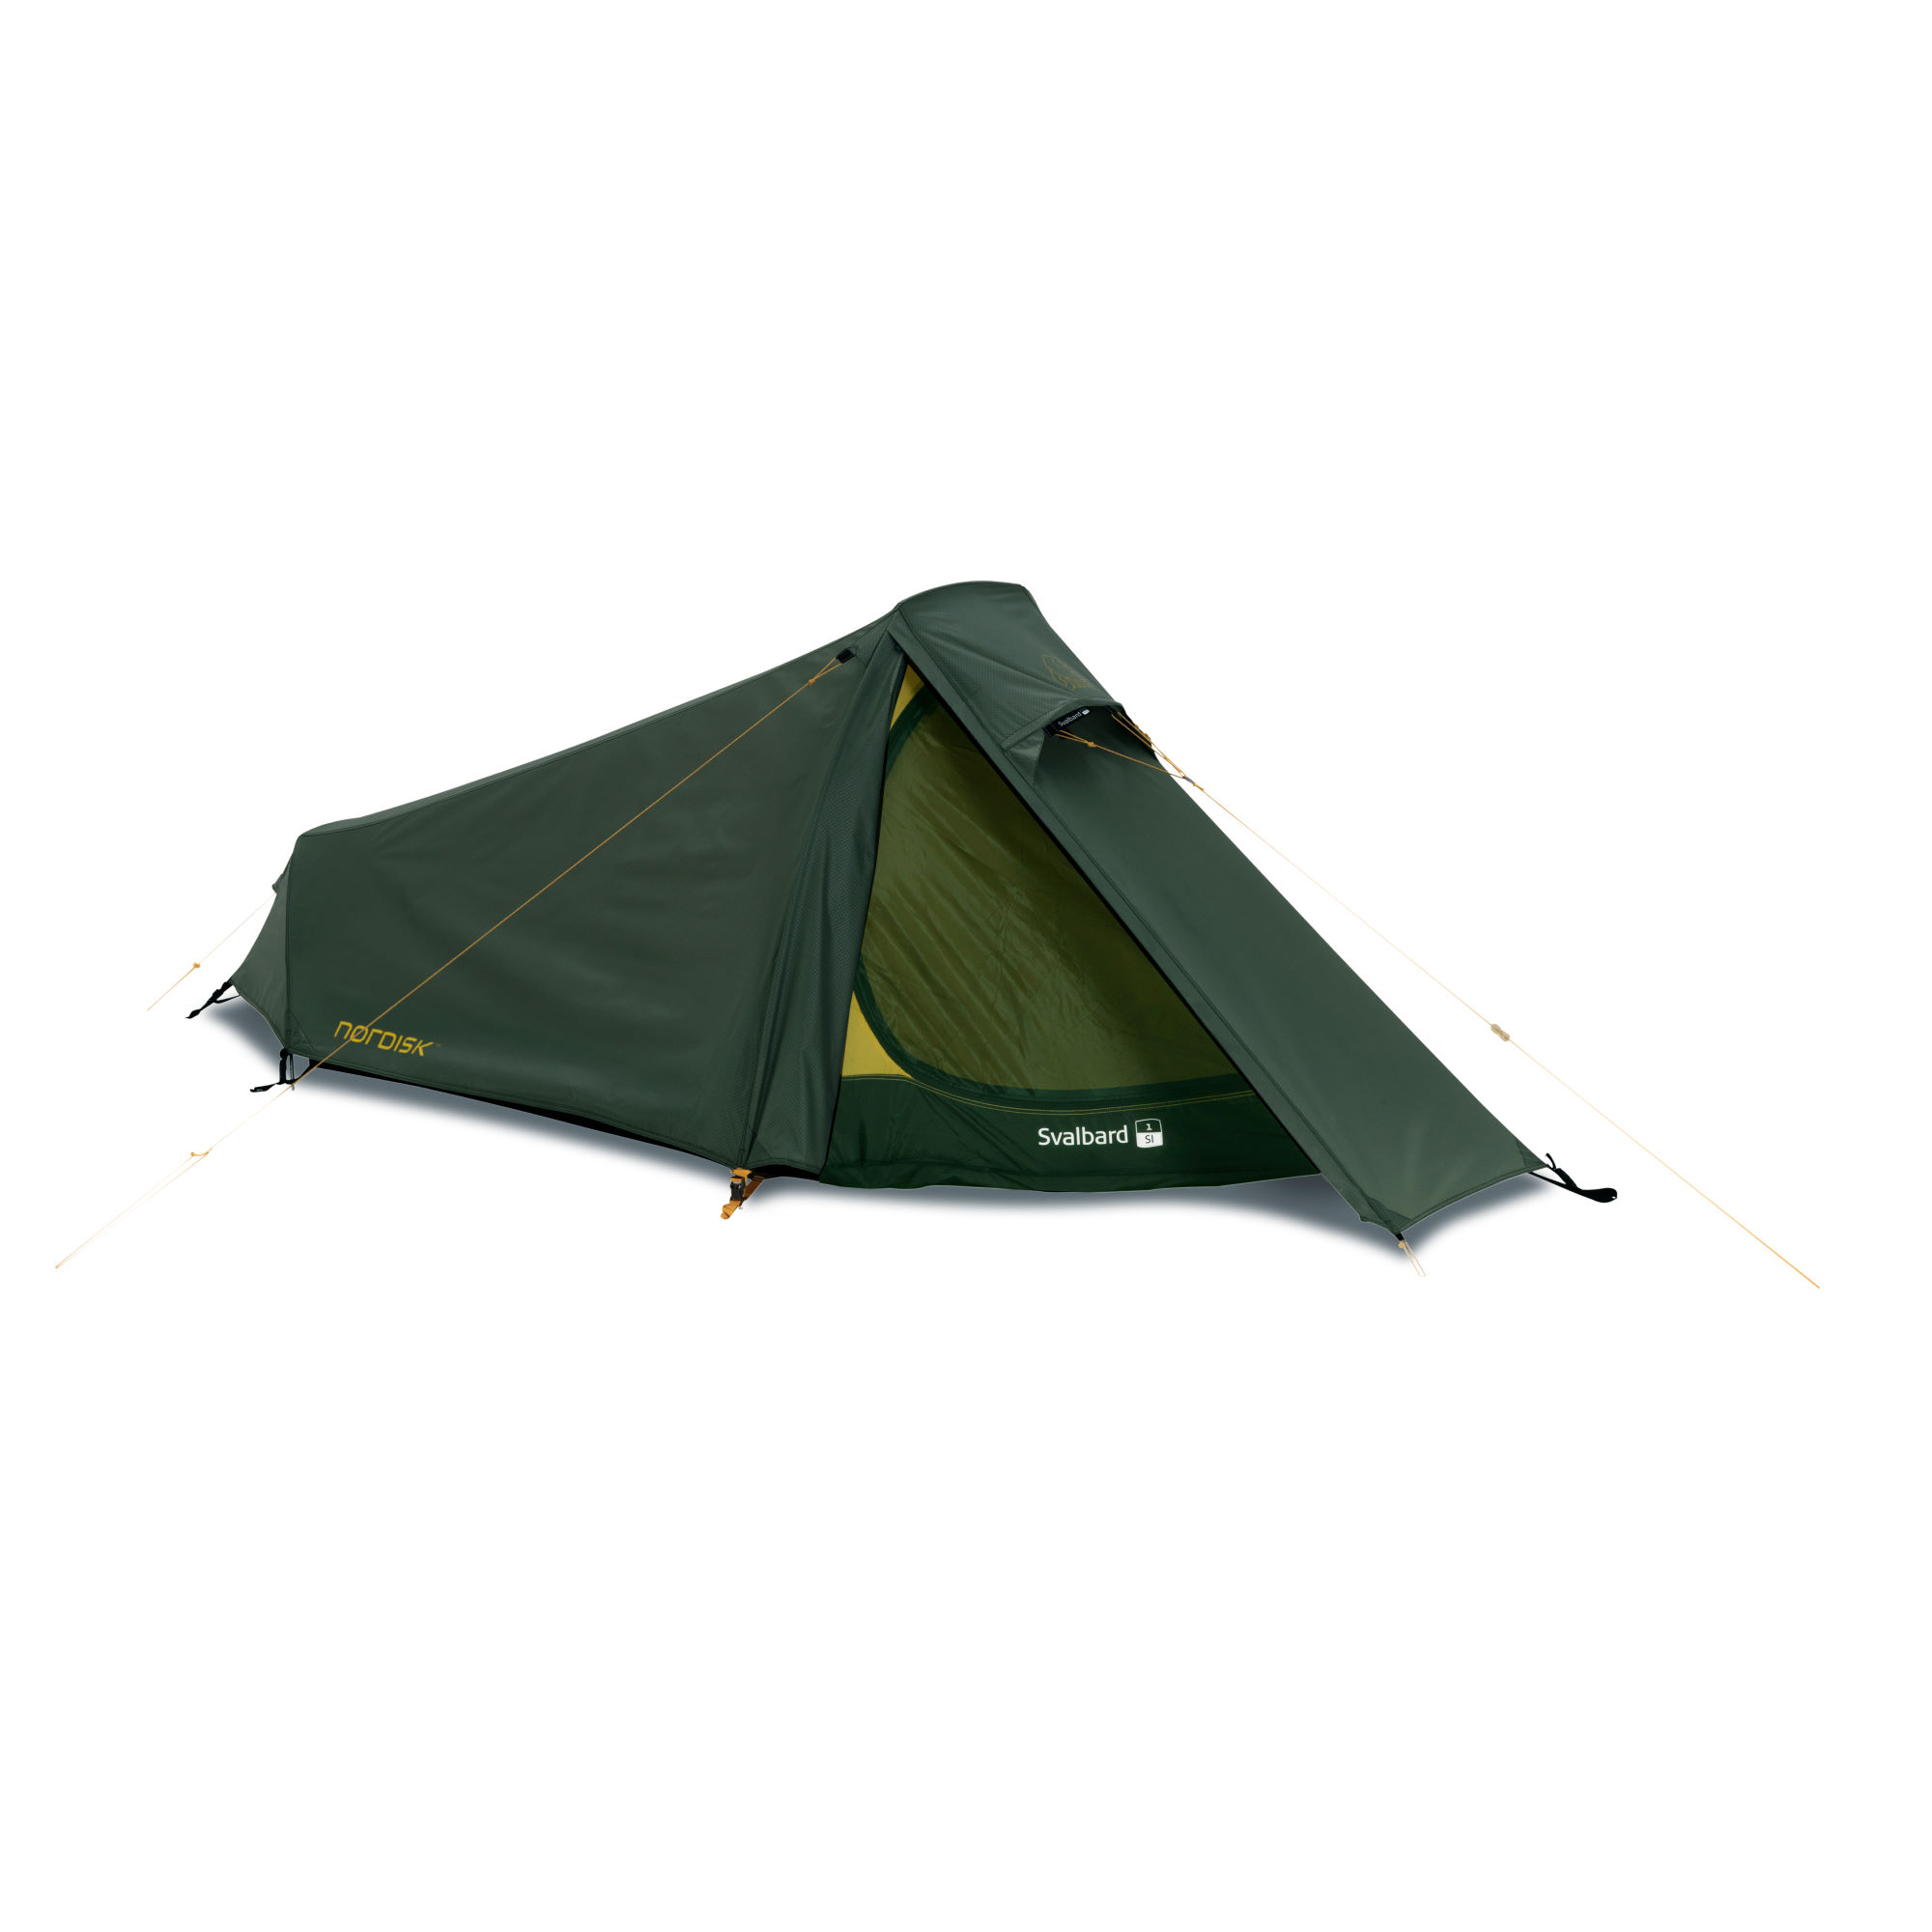 Wiggle Nordisk Svalbard 1 Si One Person Tent Tents